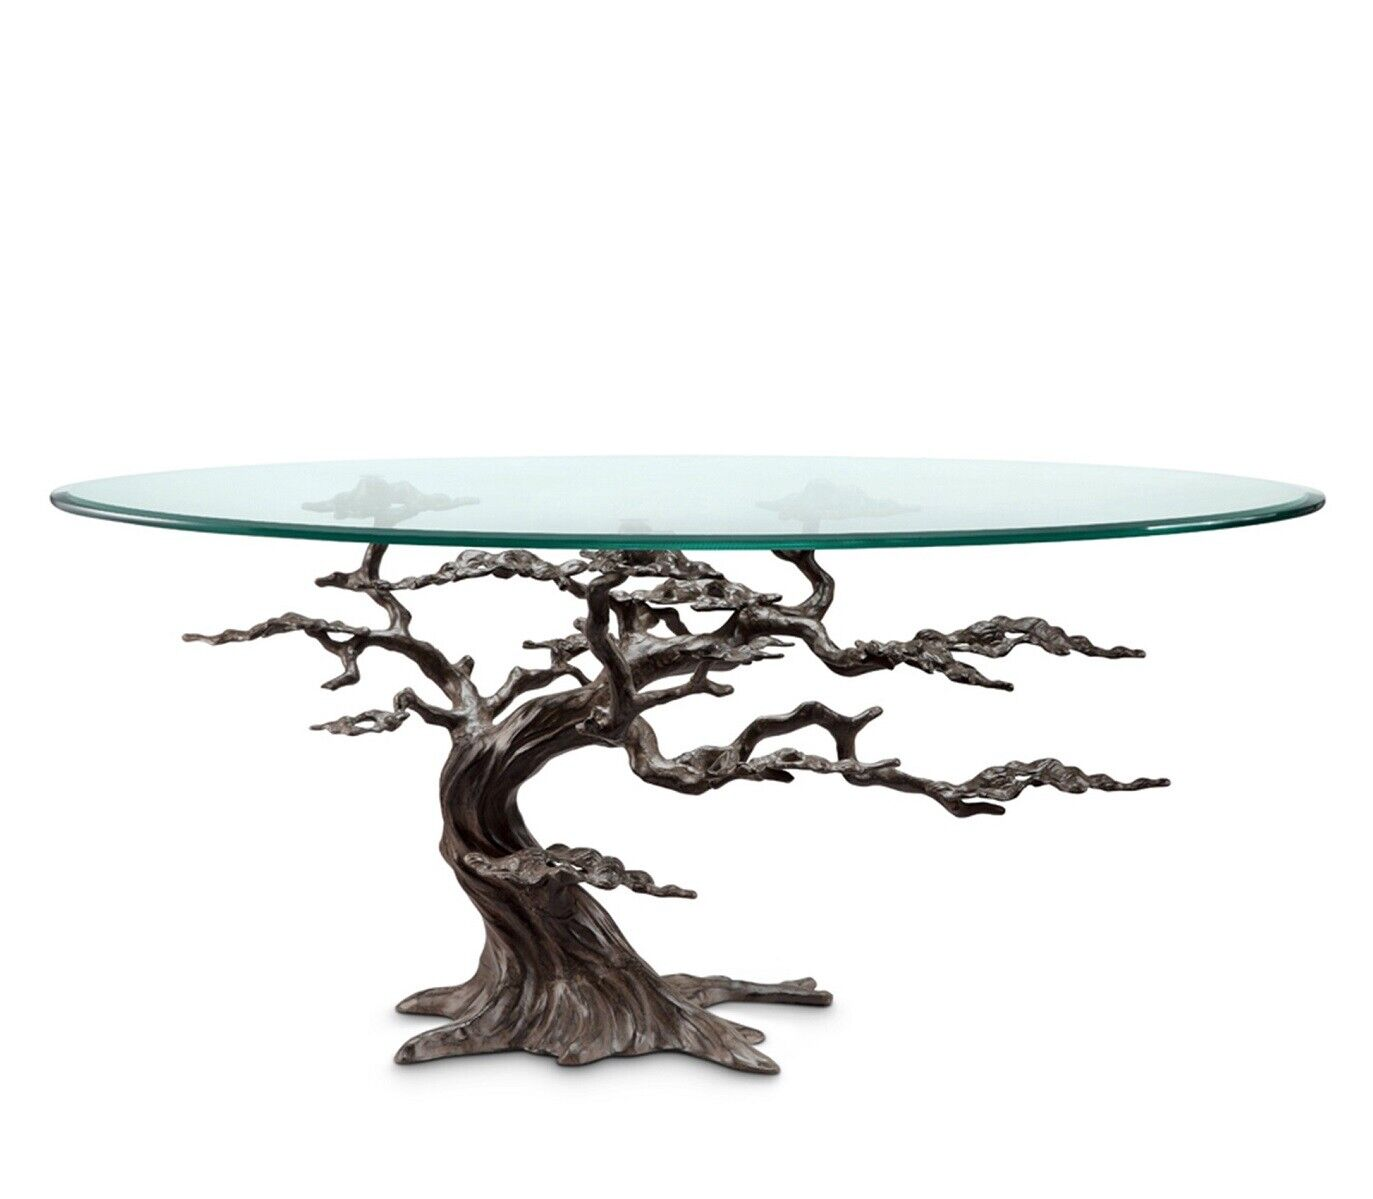 Coastal Cypress Tree Metal Gl Coffee Table Sculpture Rustic Beach River Lake